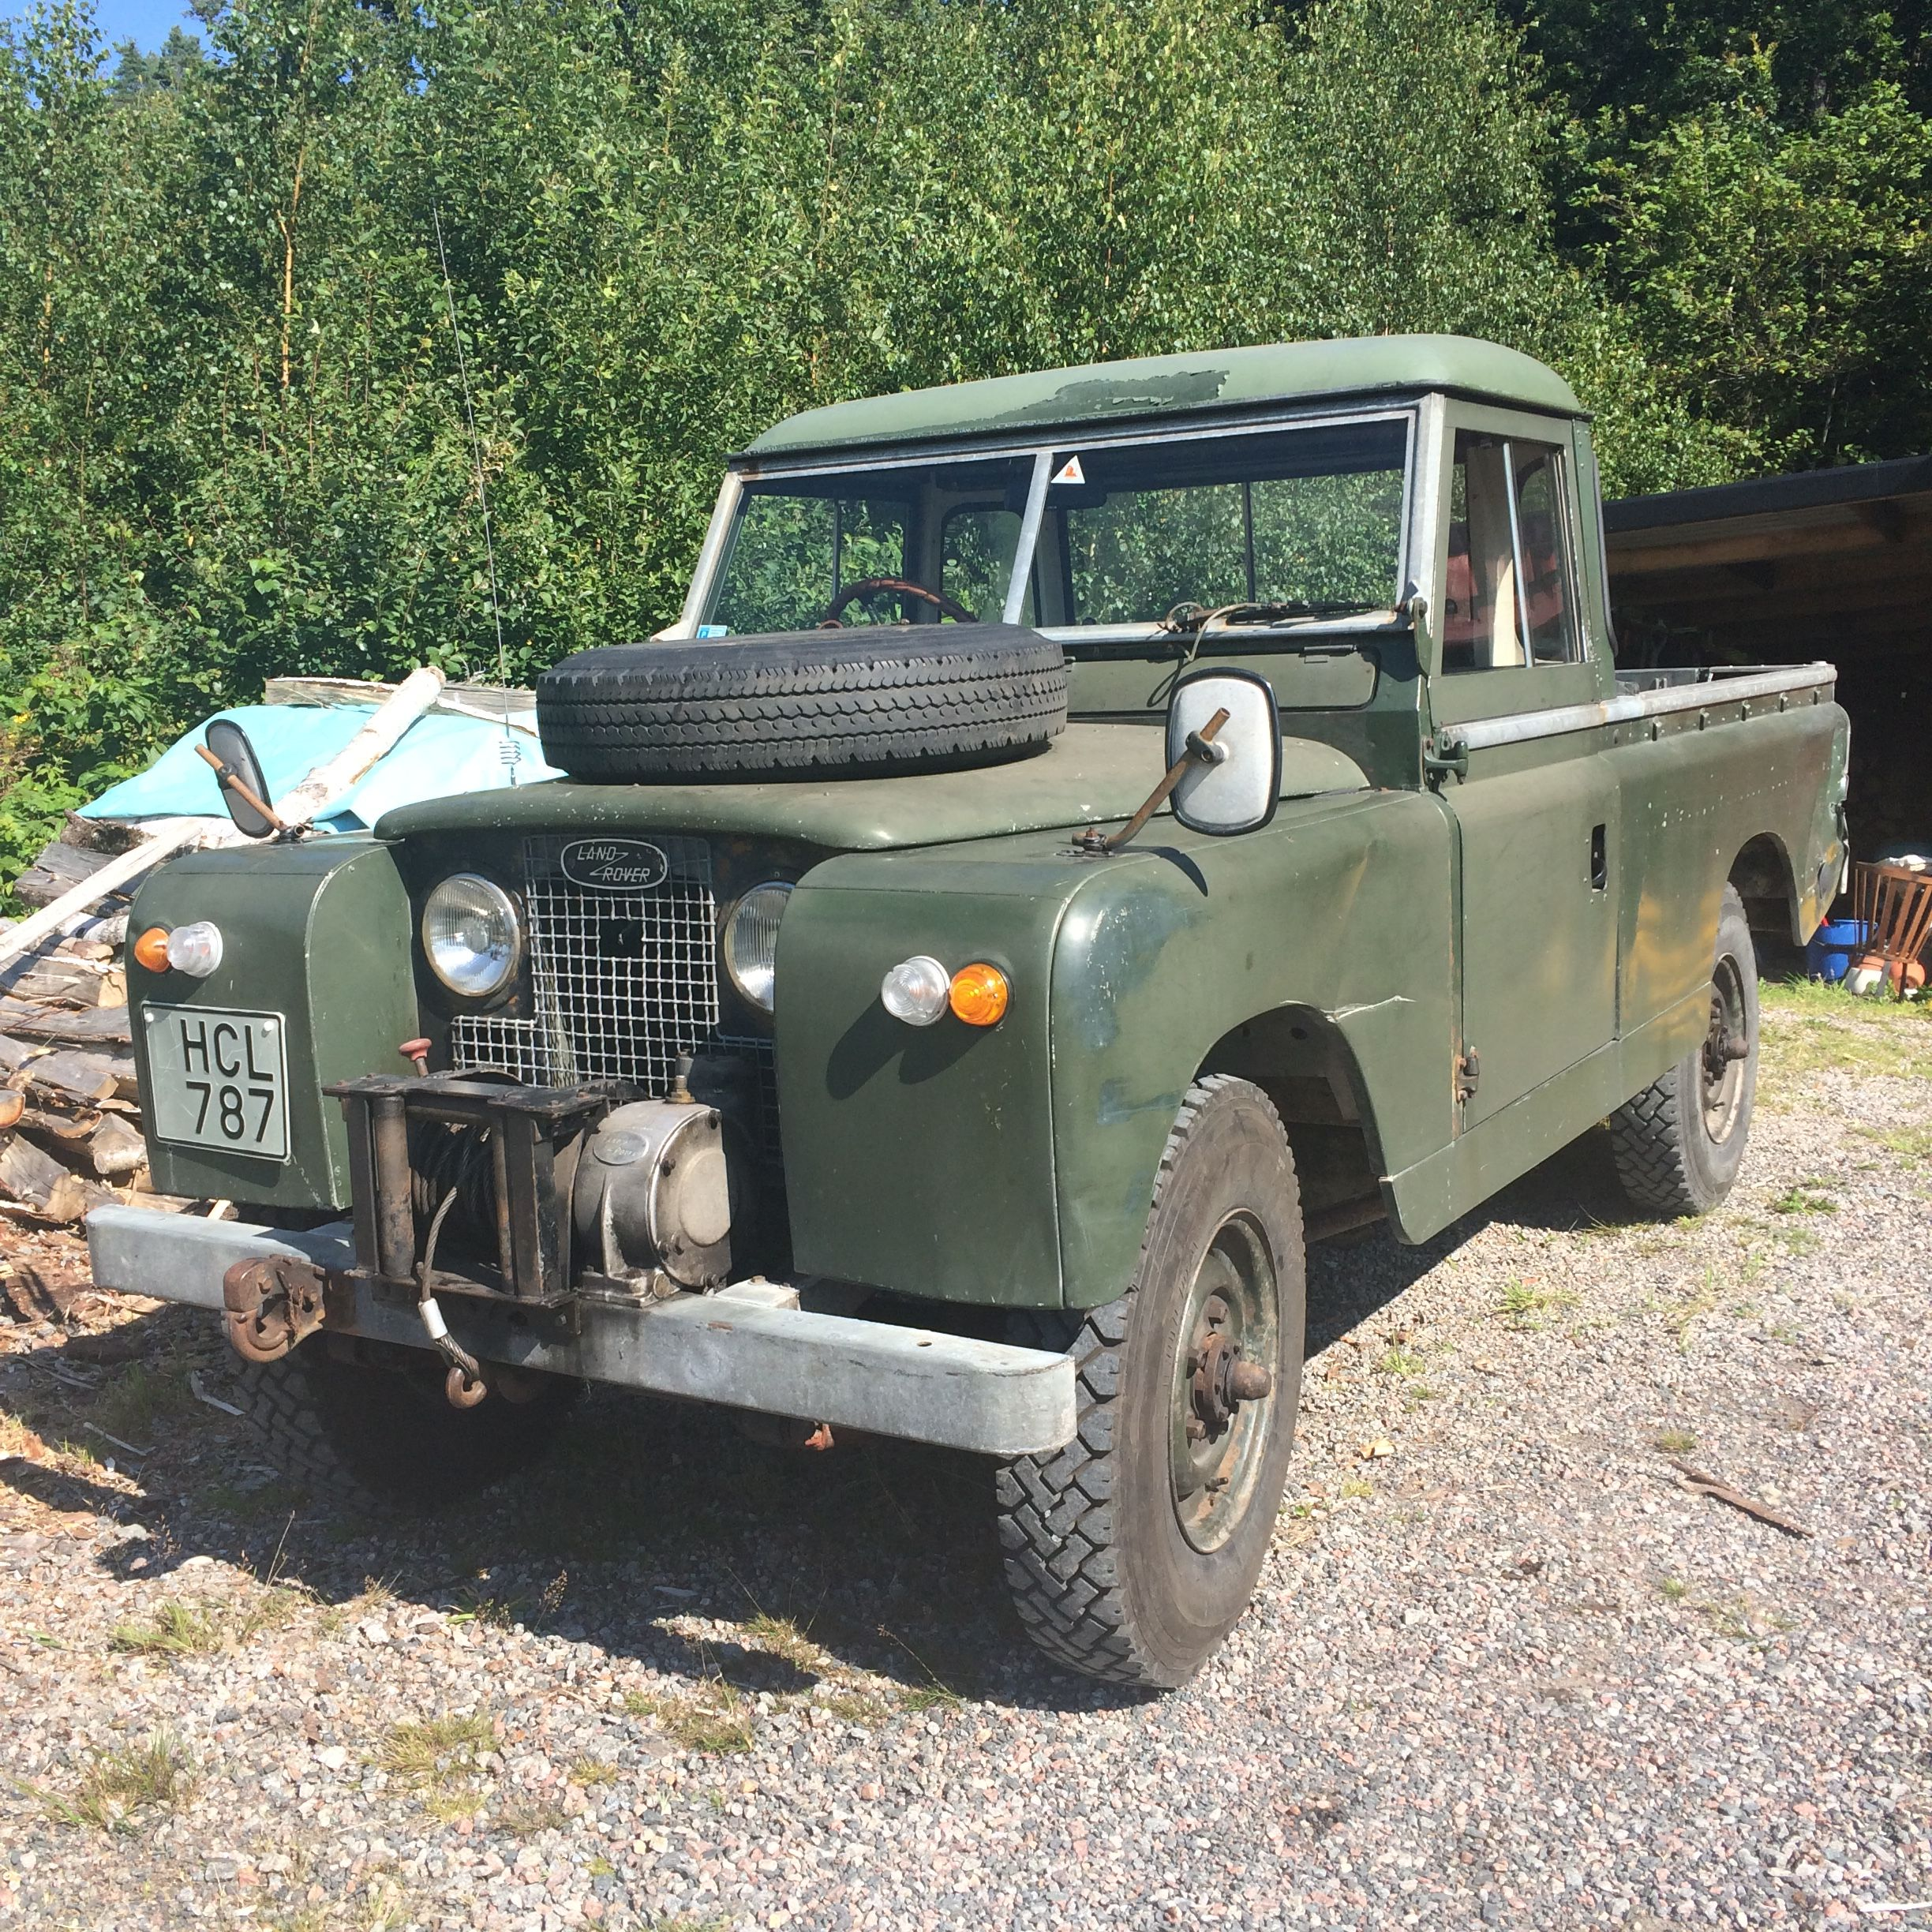 Land Rover Series Iia 109 Petrol Truck Cab From 1963 Completely Original With Factory Mounted Winch